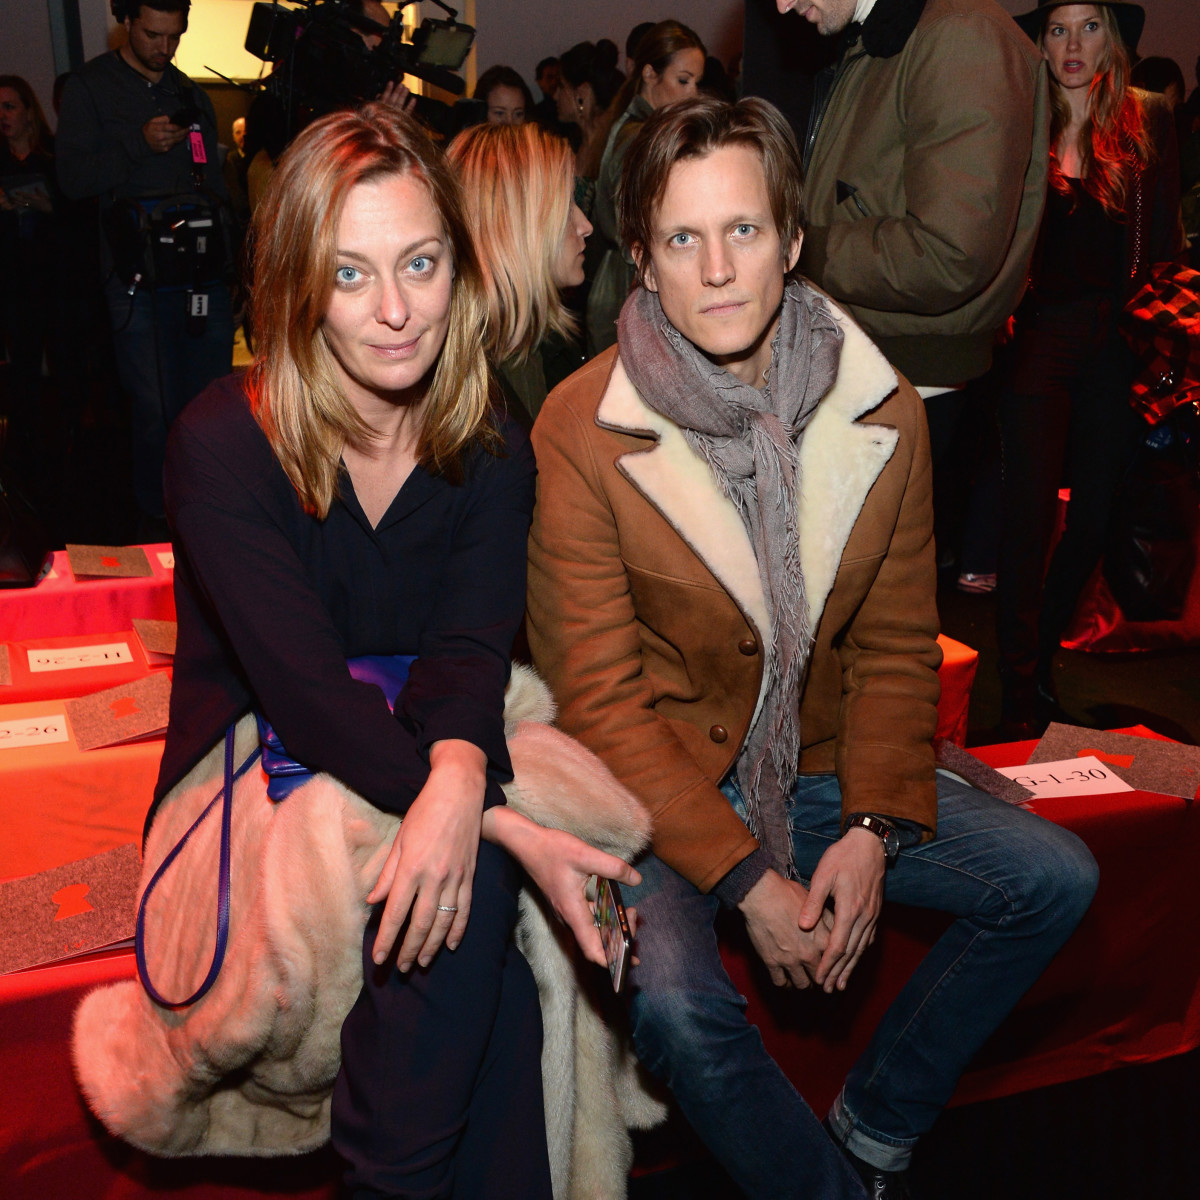 Vanity Fair's Jessica Diehl and WSJ's Magnus Berger in 2015. Photo: Ben Gabbe/Getty Images